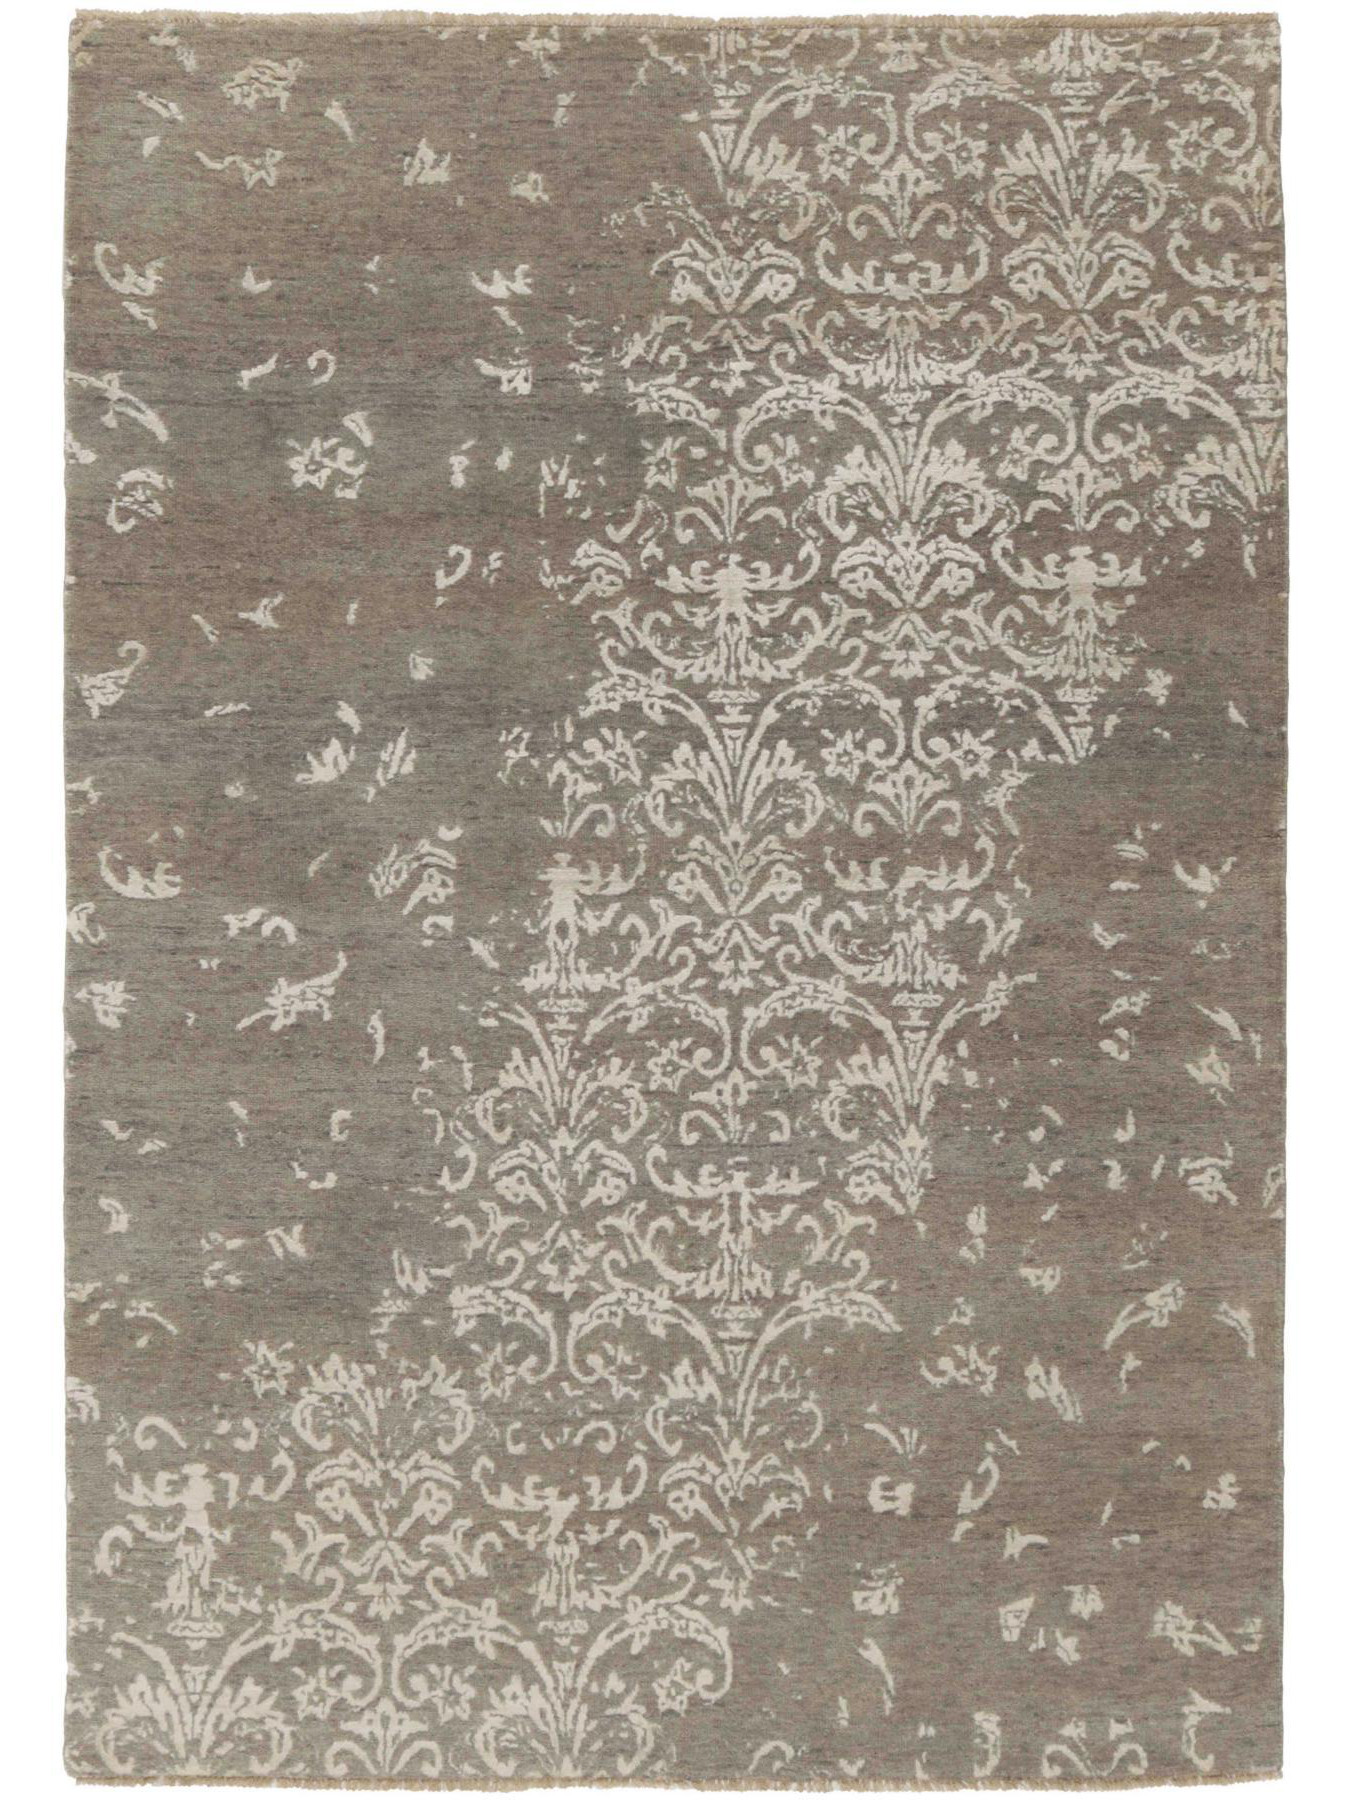 Luxury tapijten - Damask-AL-2E F-34/B-34